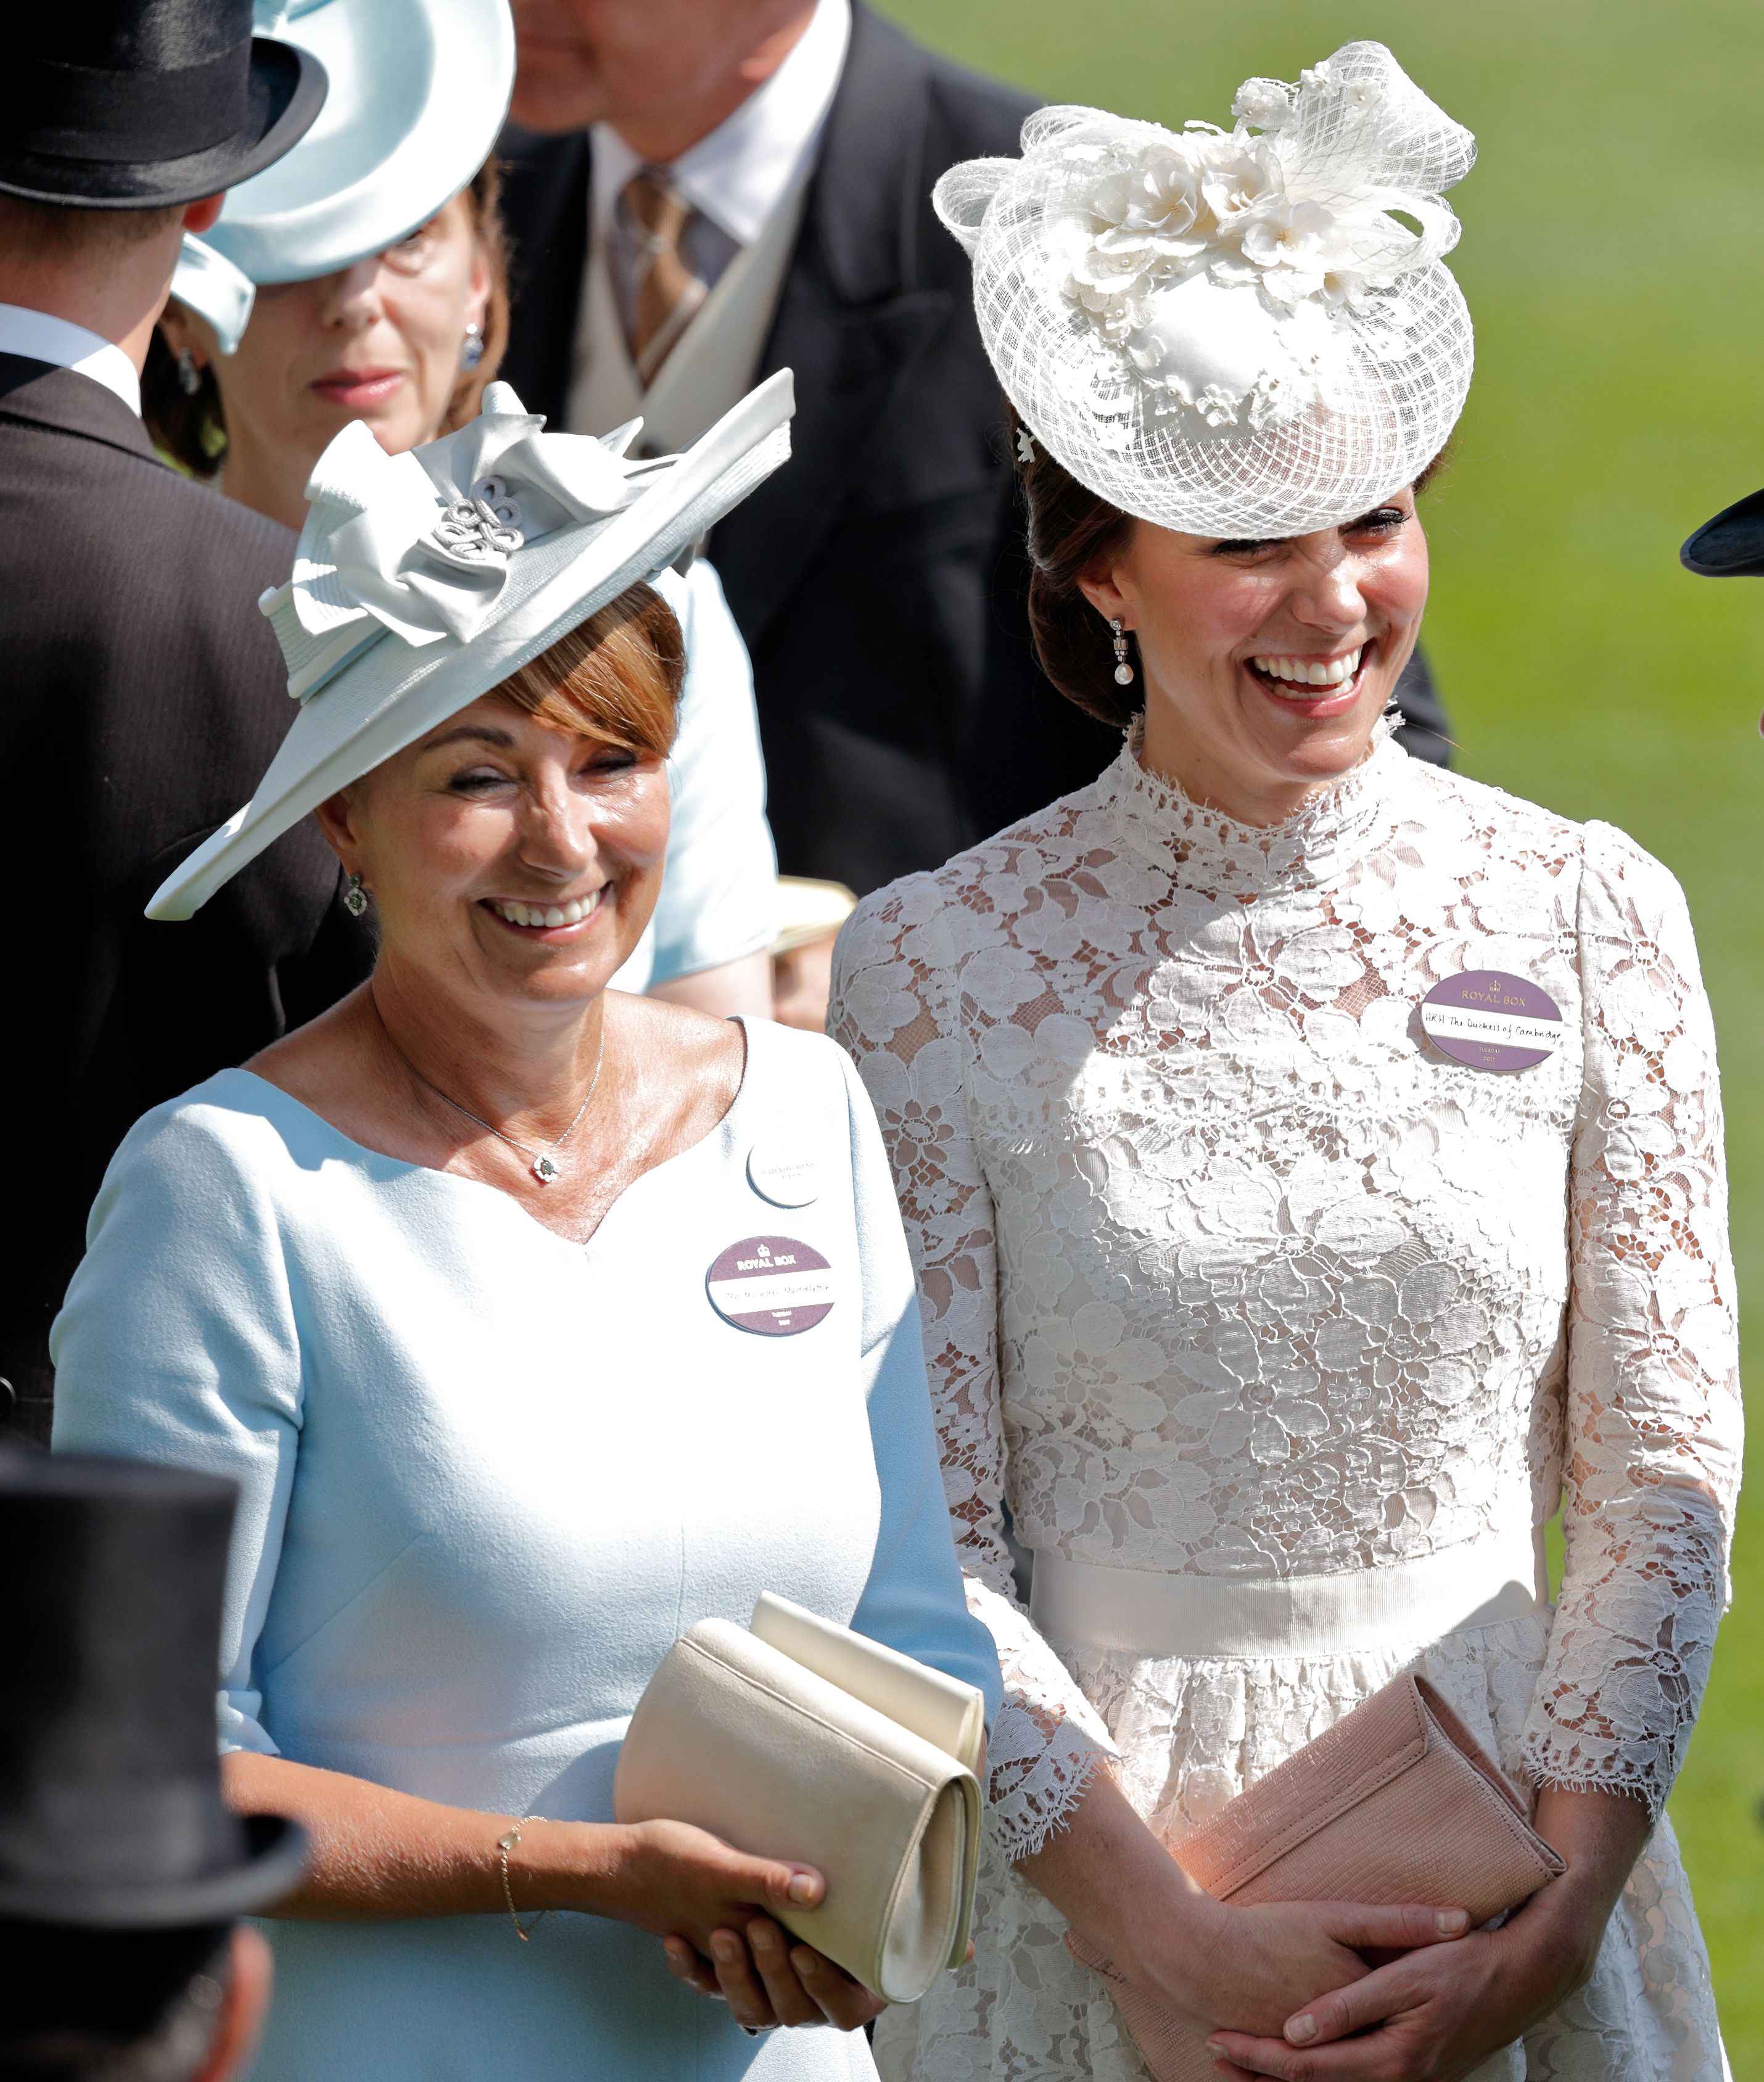 Kate Middleton and her mother Carole Middleton attend day 1 of Royal Ascot at Ascot Racecourse on June 20, 2017 in Ascot, England. | Photo: Getty Images